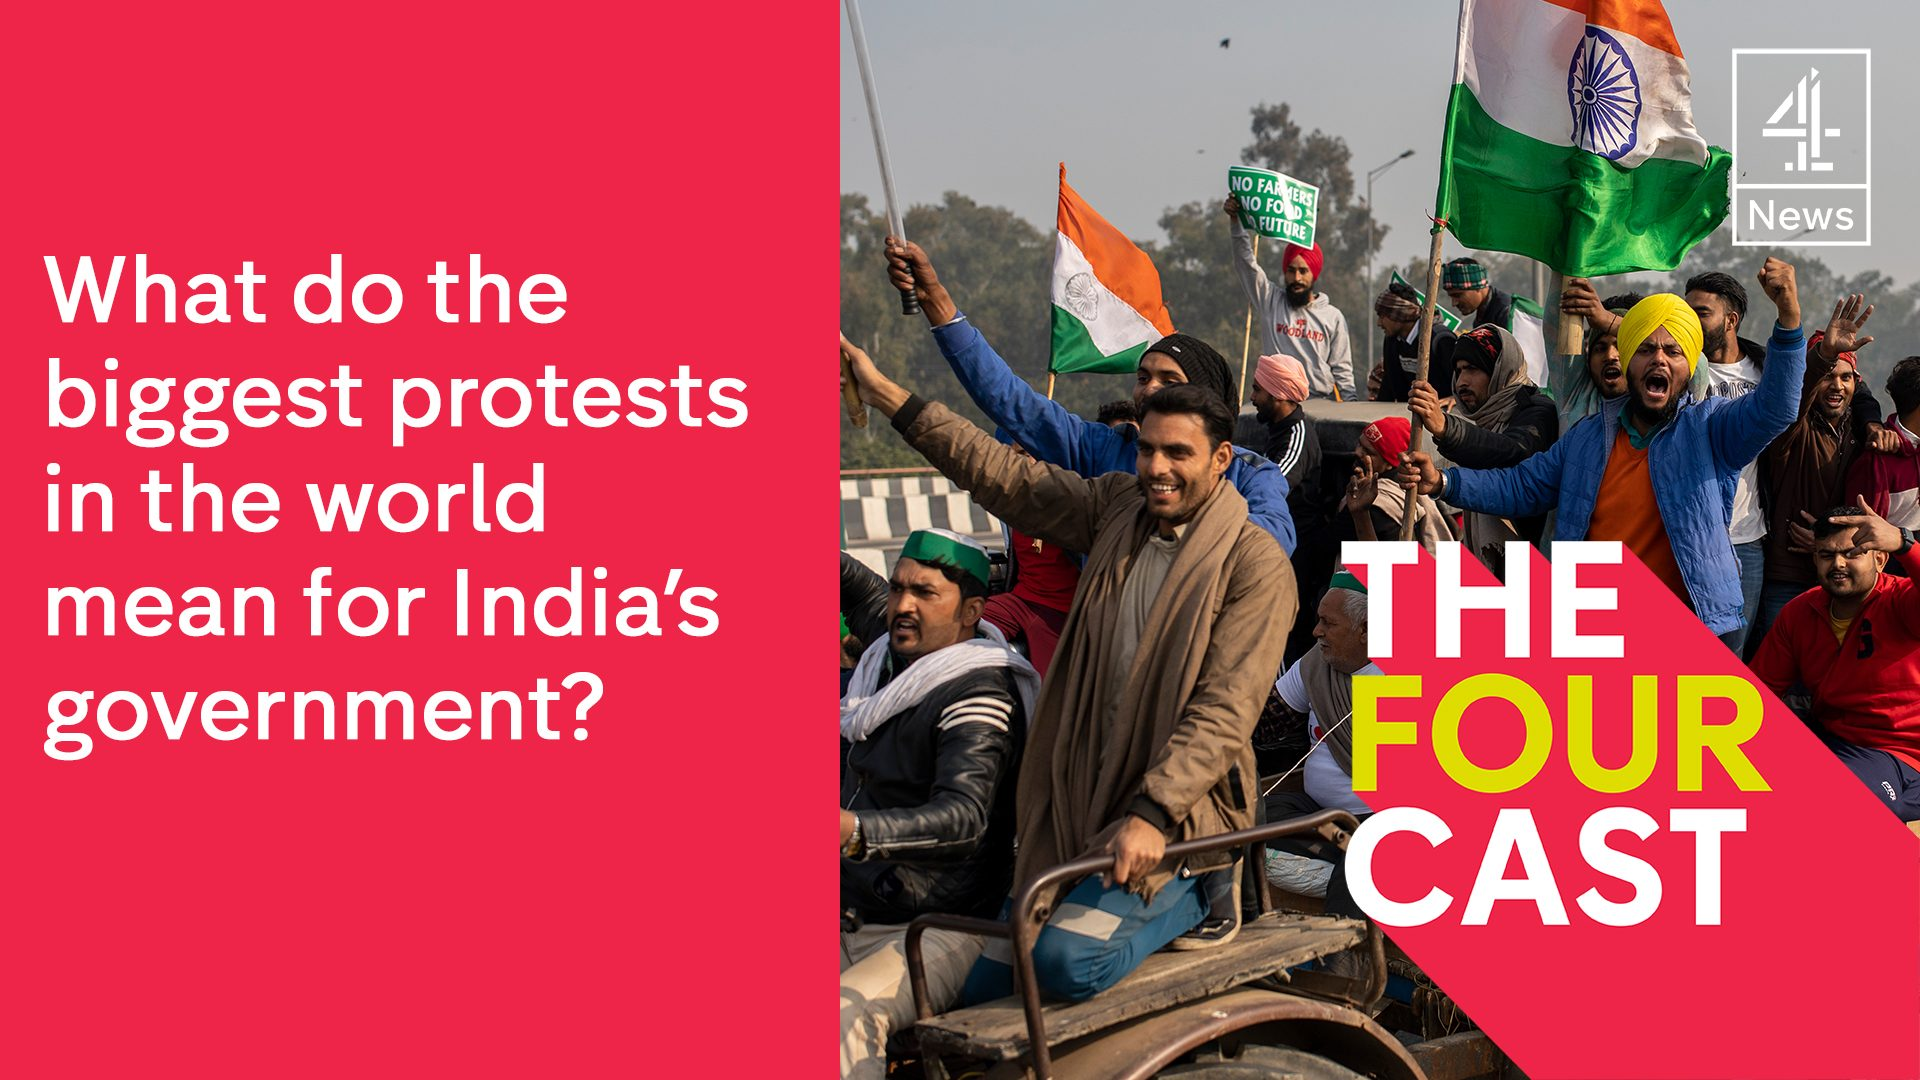 What do the biggest protests in the world mean for India's government? - channel 4